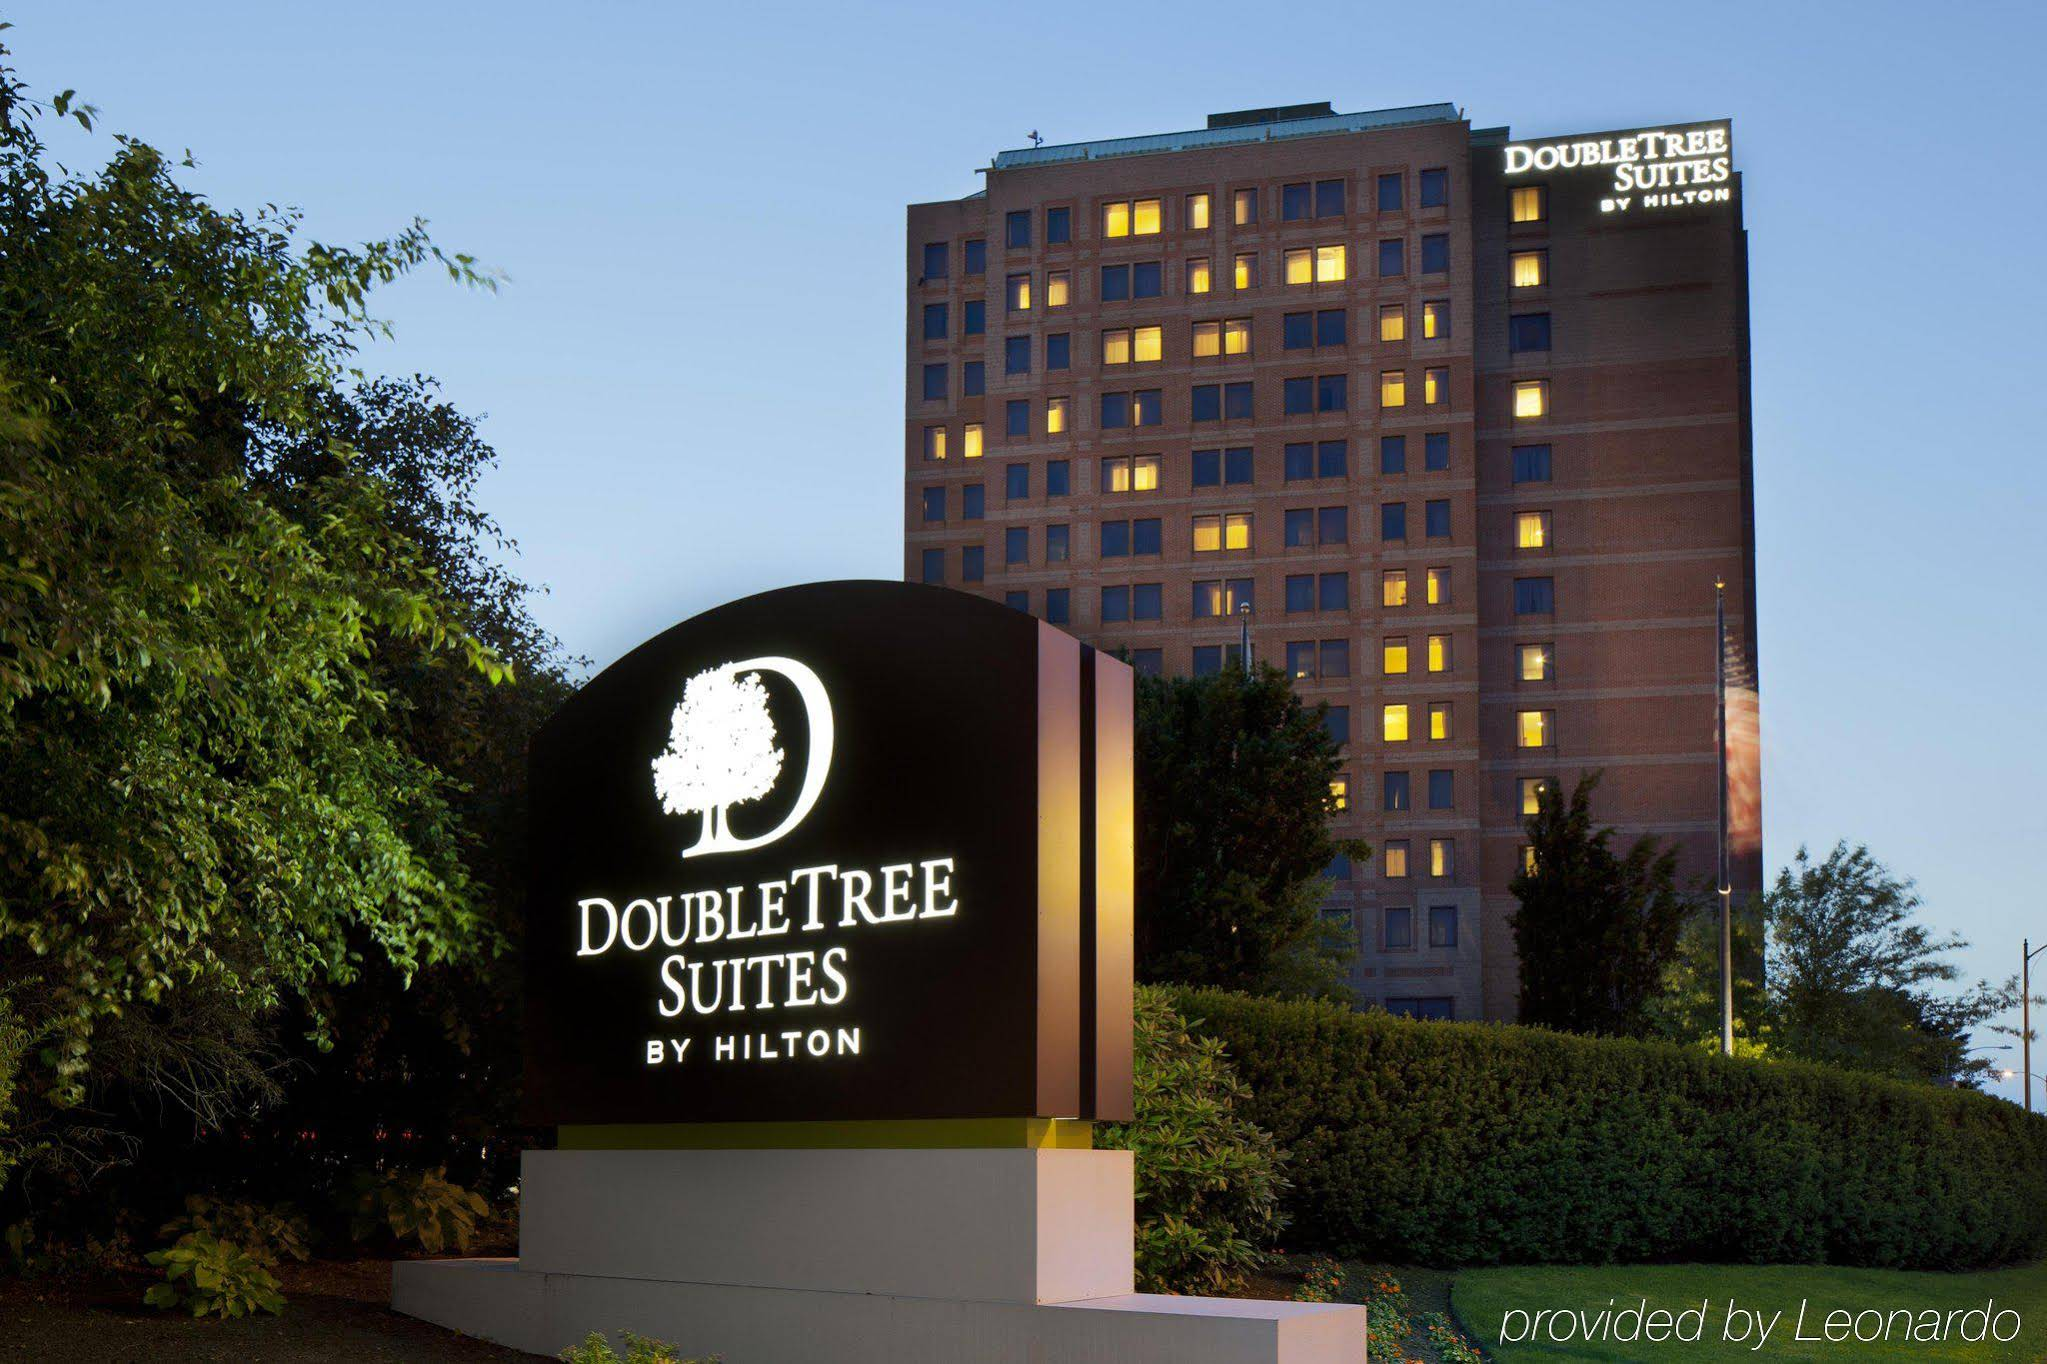 DoubleTree Suites by Hilton Hotel Boston Cambridge